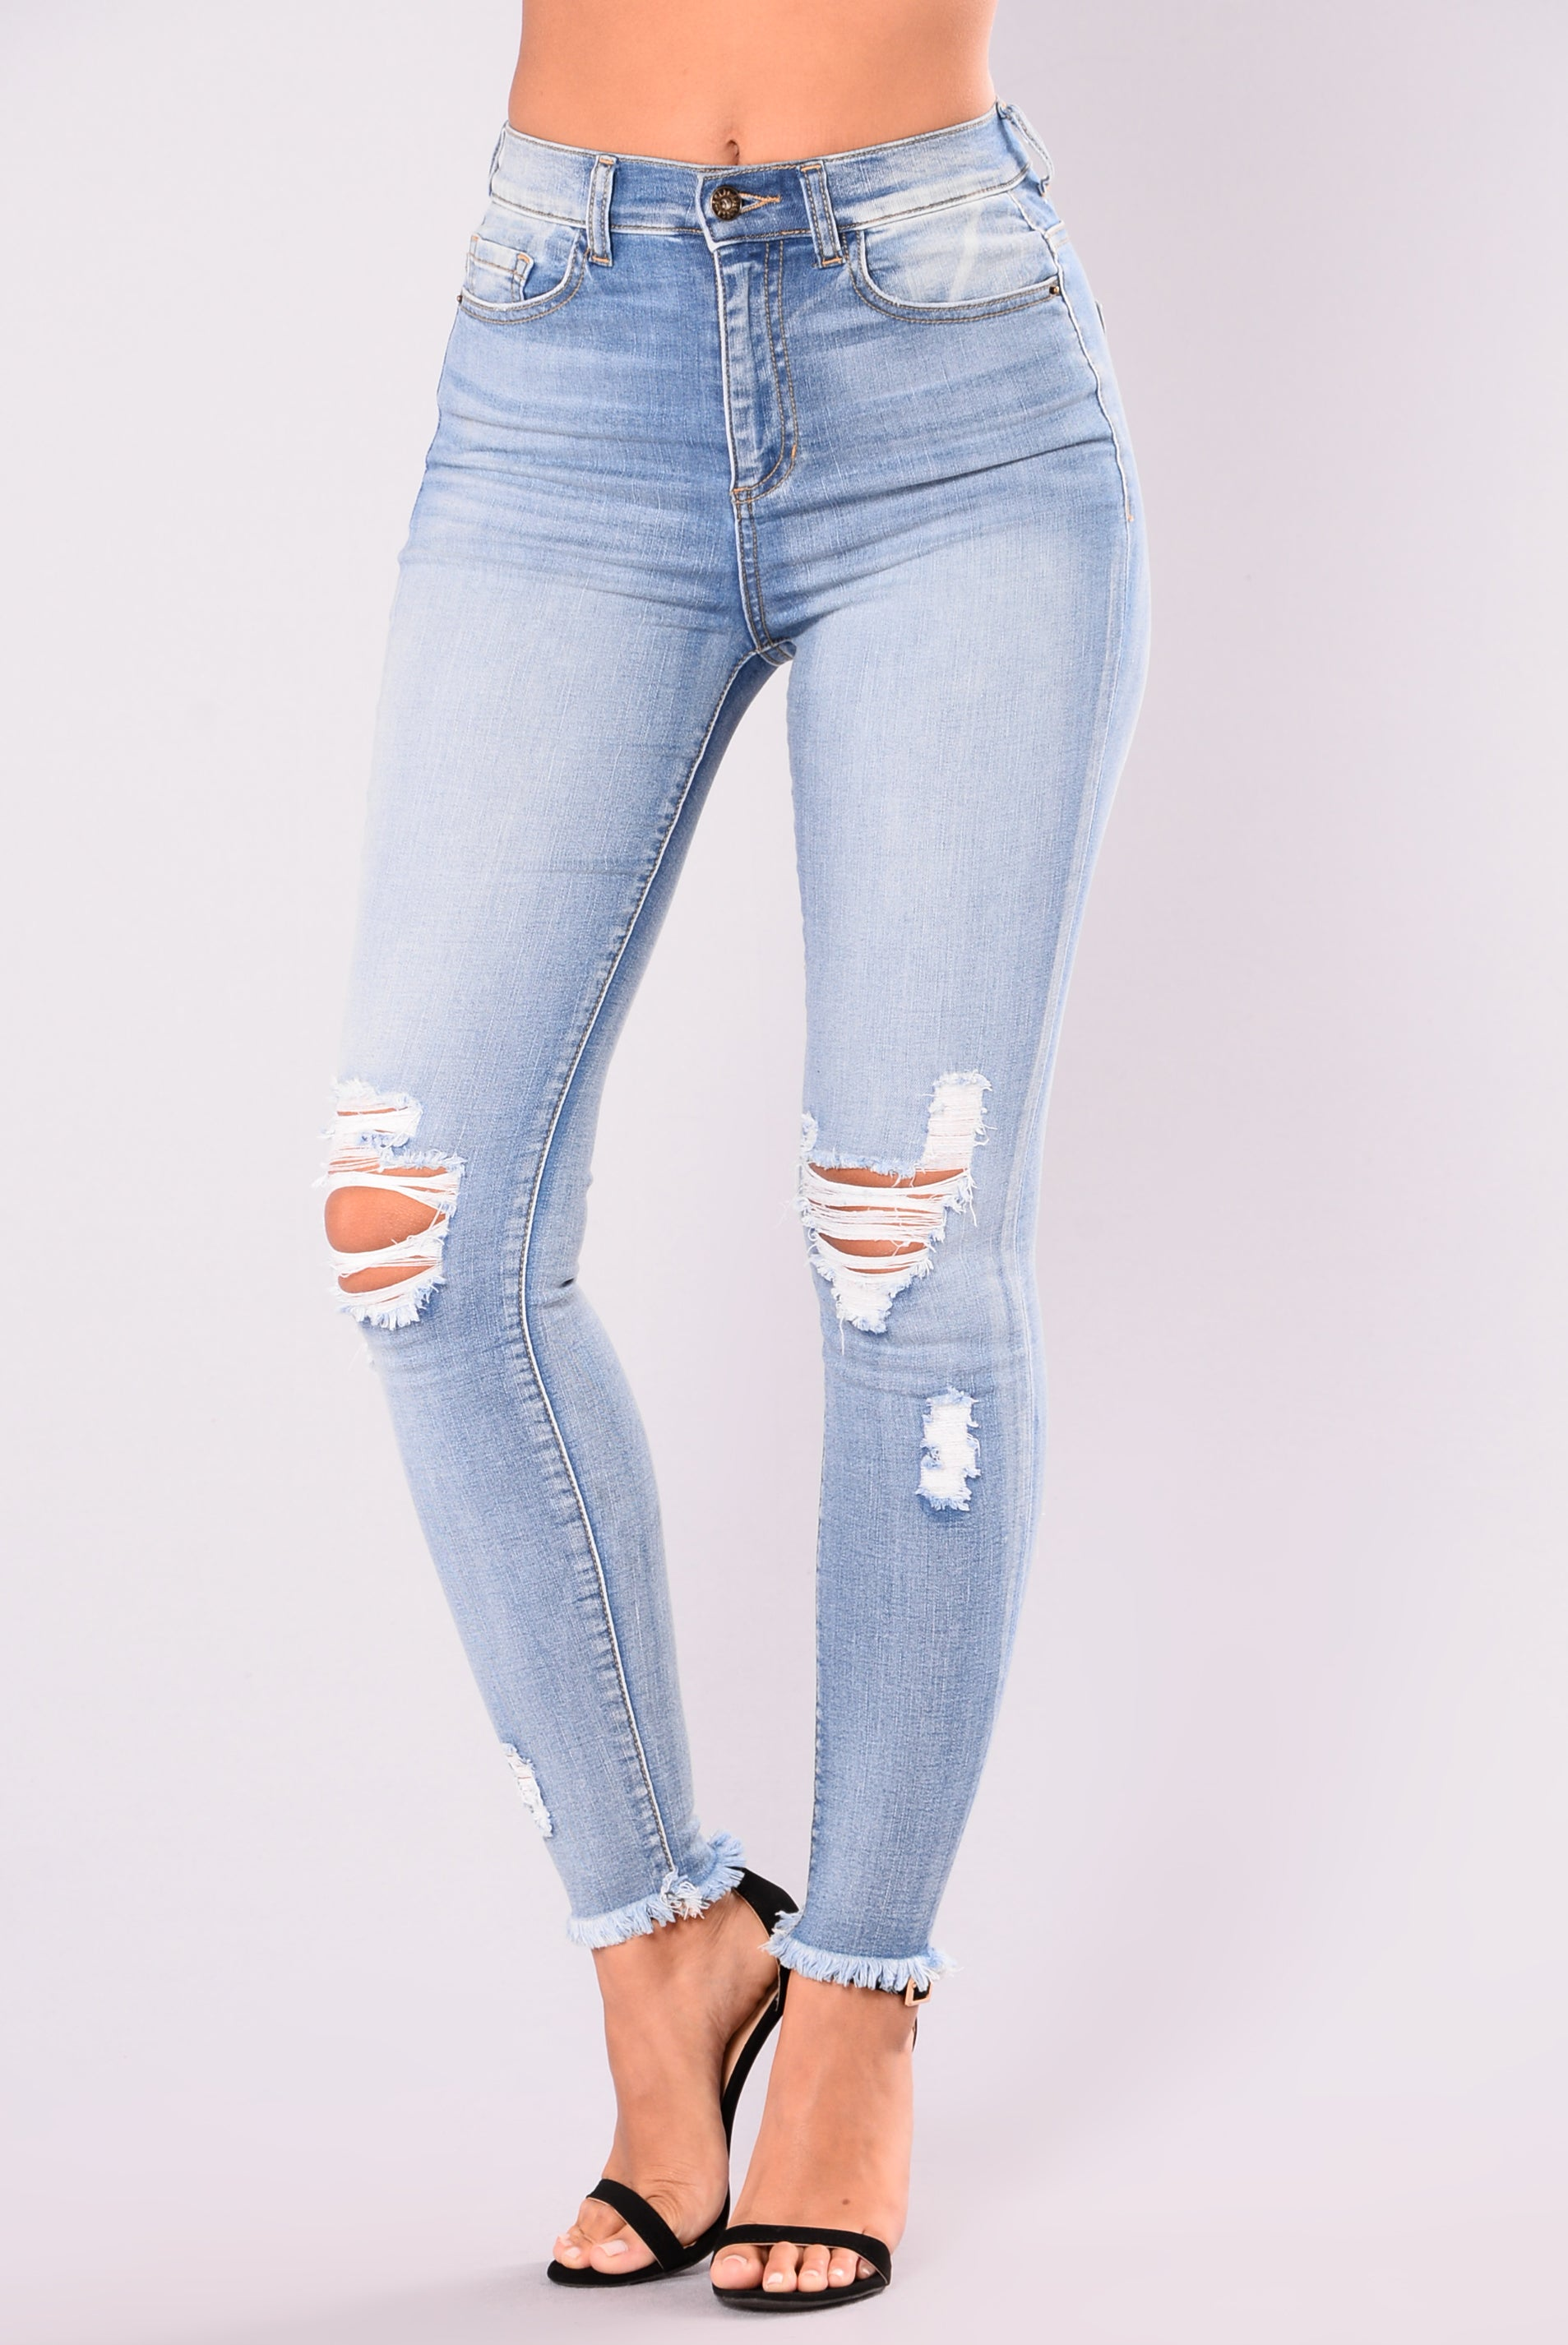 bf3f295c7d8 Smiley High Rise Distress Jeans - Light Blue Wash